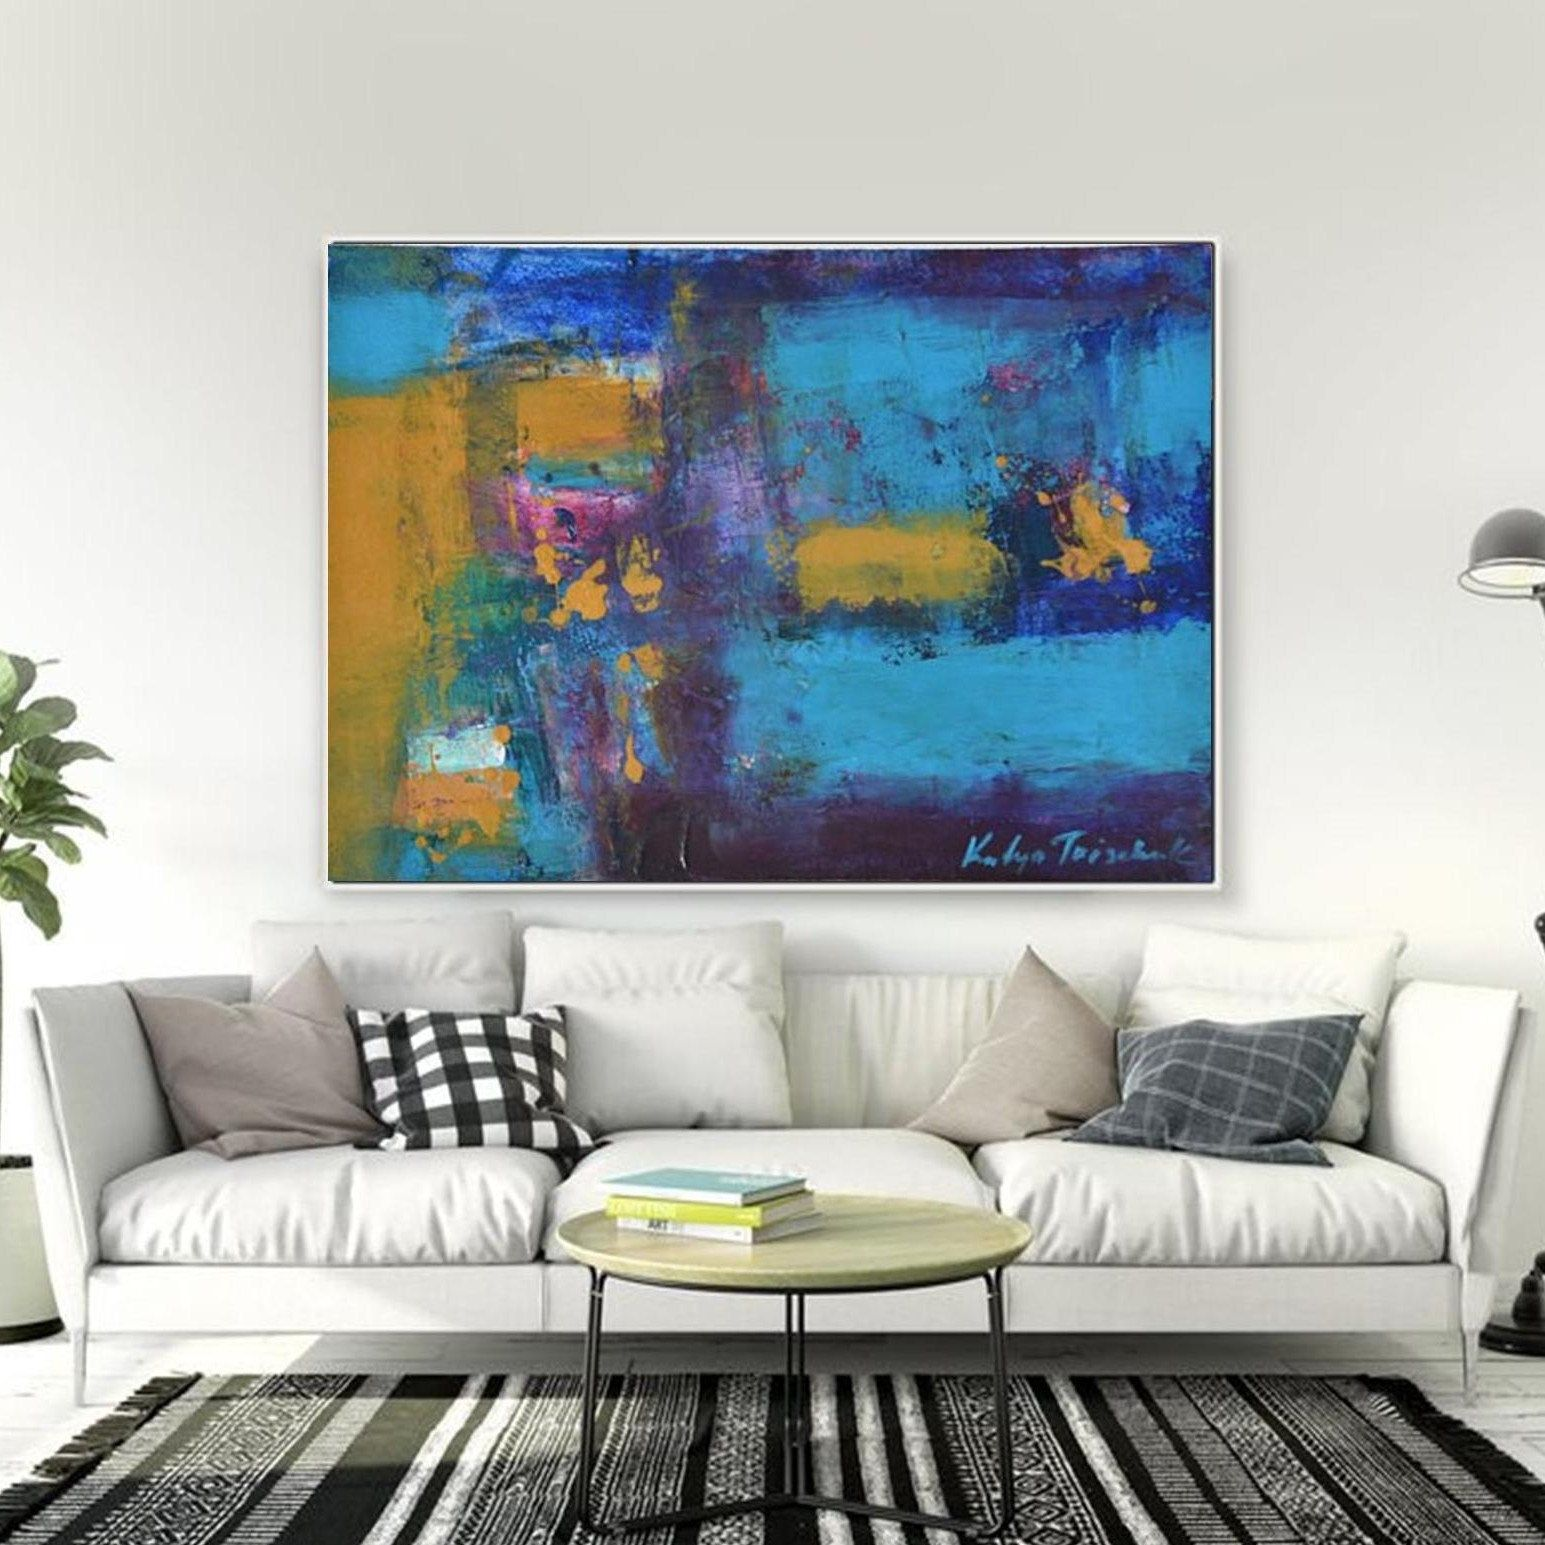 Cobalt blue wall decor abstract art giclee canvas print or original